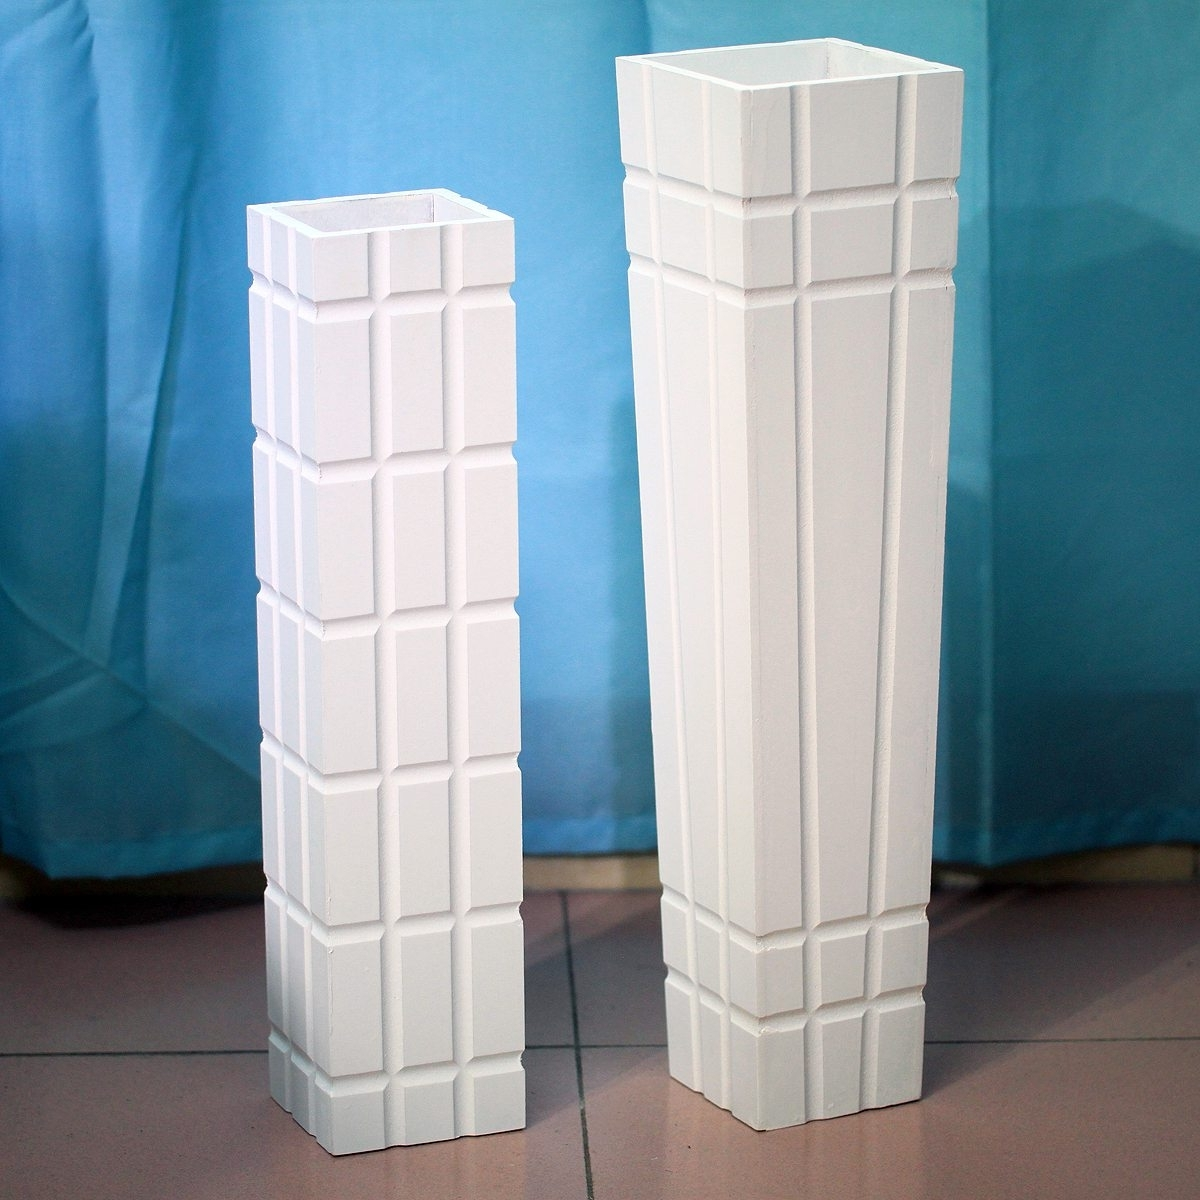 Extra Large Floor Vases | White Ceramic Floor Vase | Large Glass Floor Vase